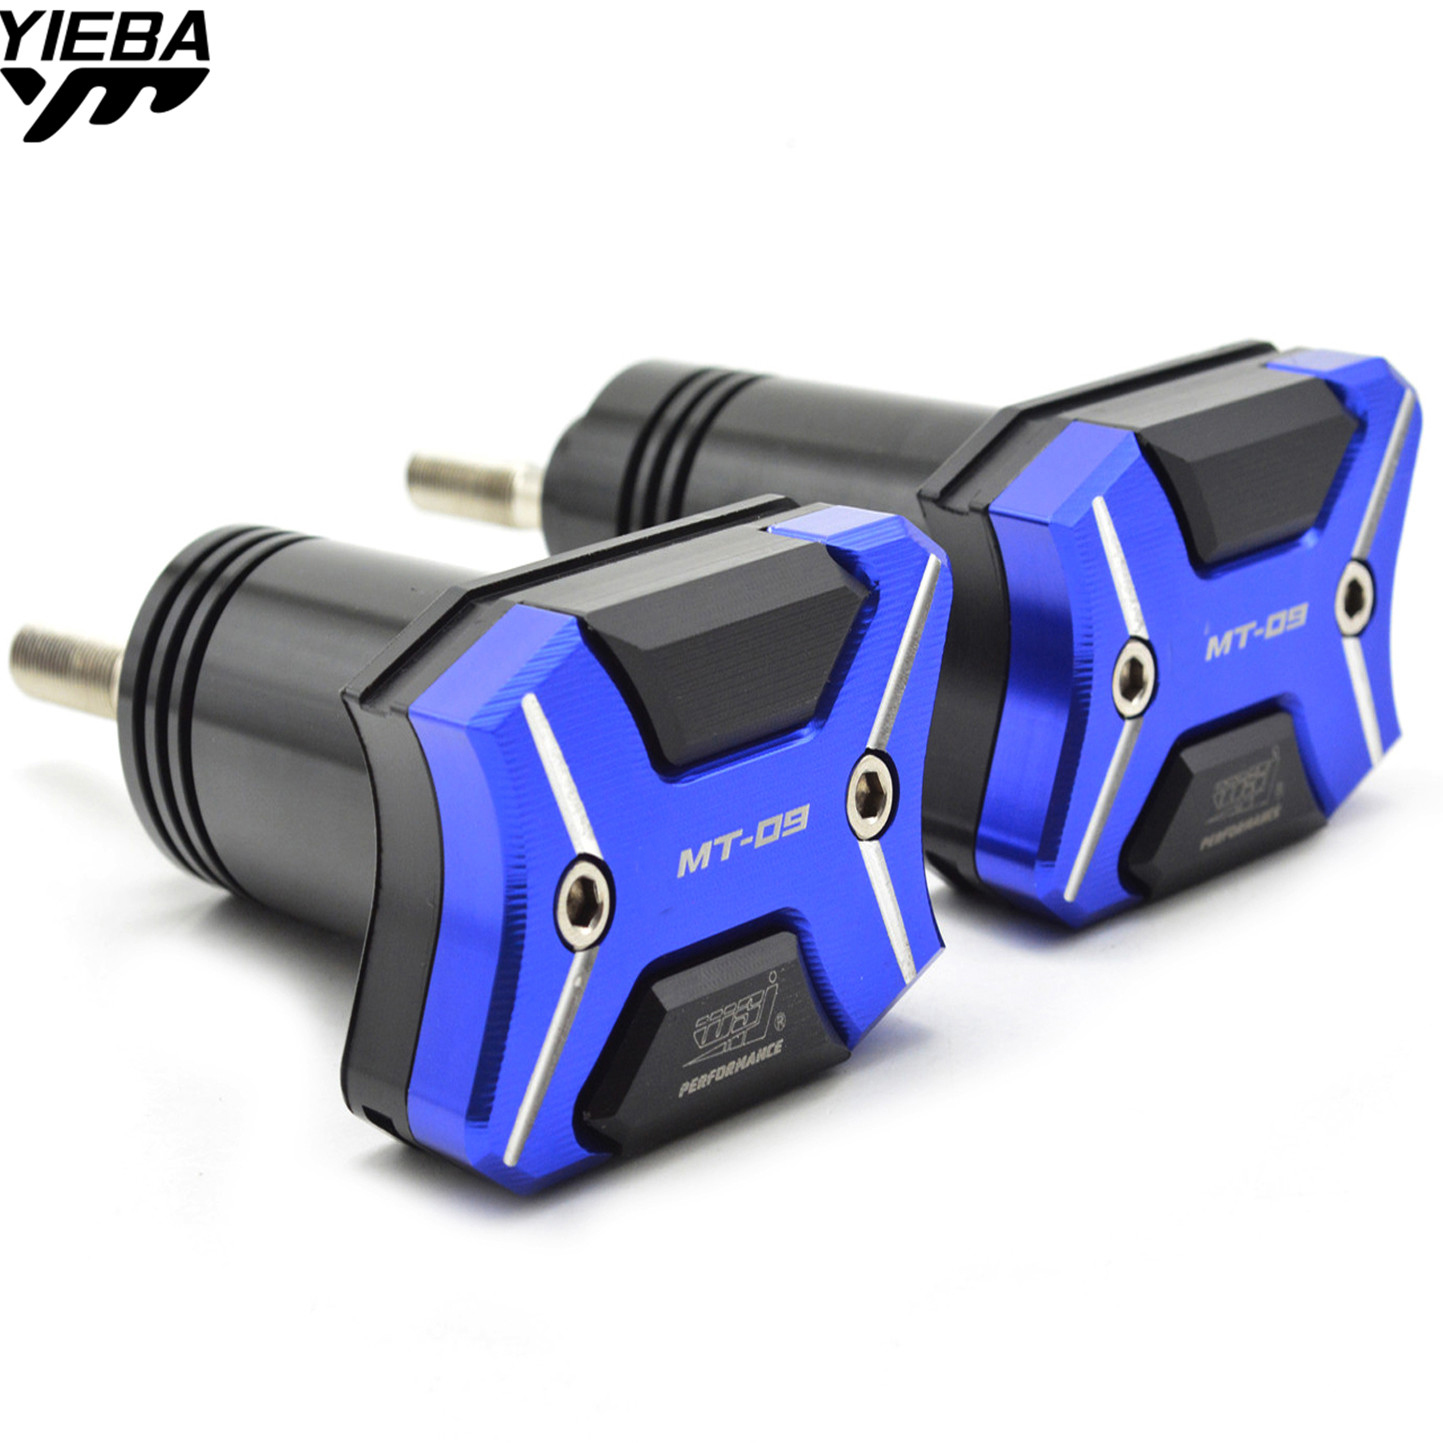 with mt-09 LOGO Motorcycle Frame Crash Pads Engine Case Sliders Falling Protector For Yamaha MT-09 MT09 FZ-09 FZ09 2015-2016 engine bumper guard crash bars protector steel for yamaha mt09 mt 09 fz07 fz 09 2014 2016 2014 2015 2016 motorcycle